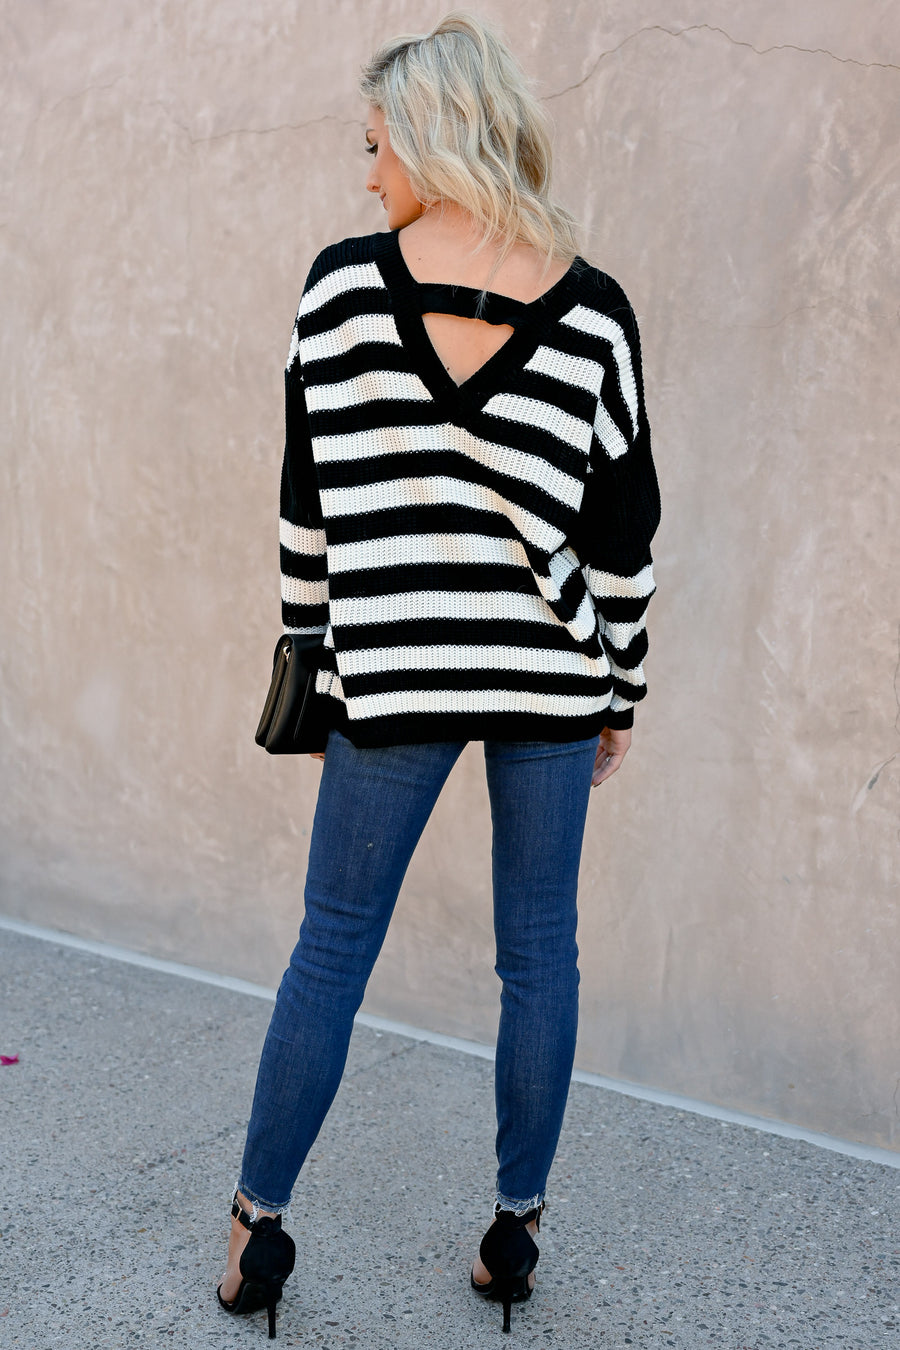 Something To Believe In Sweater - Black & Ivory womens trendy striped v-neck long sleeve closet candy front